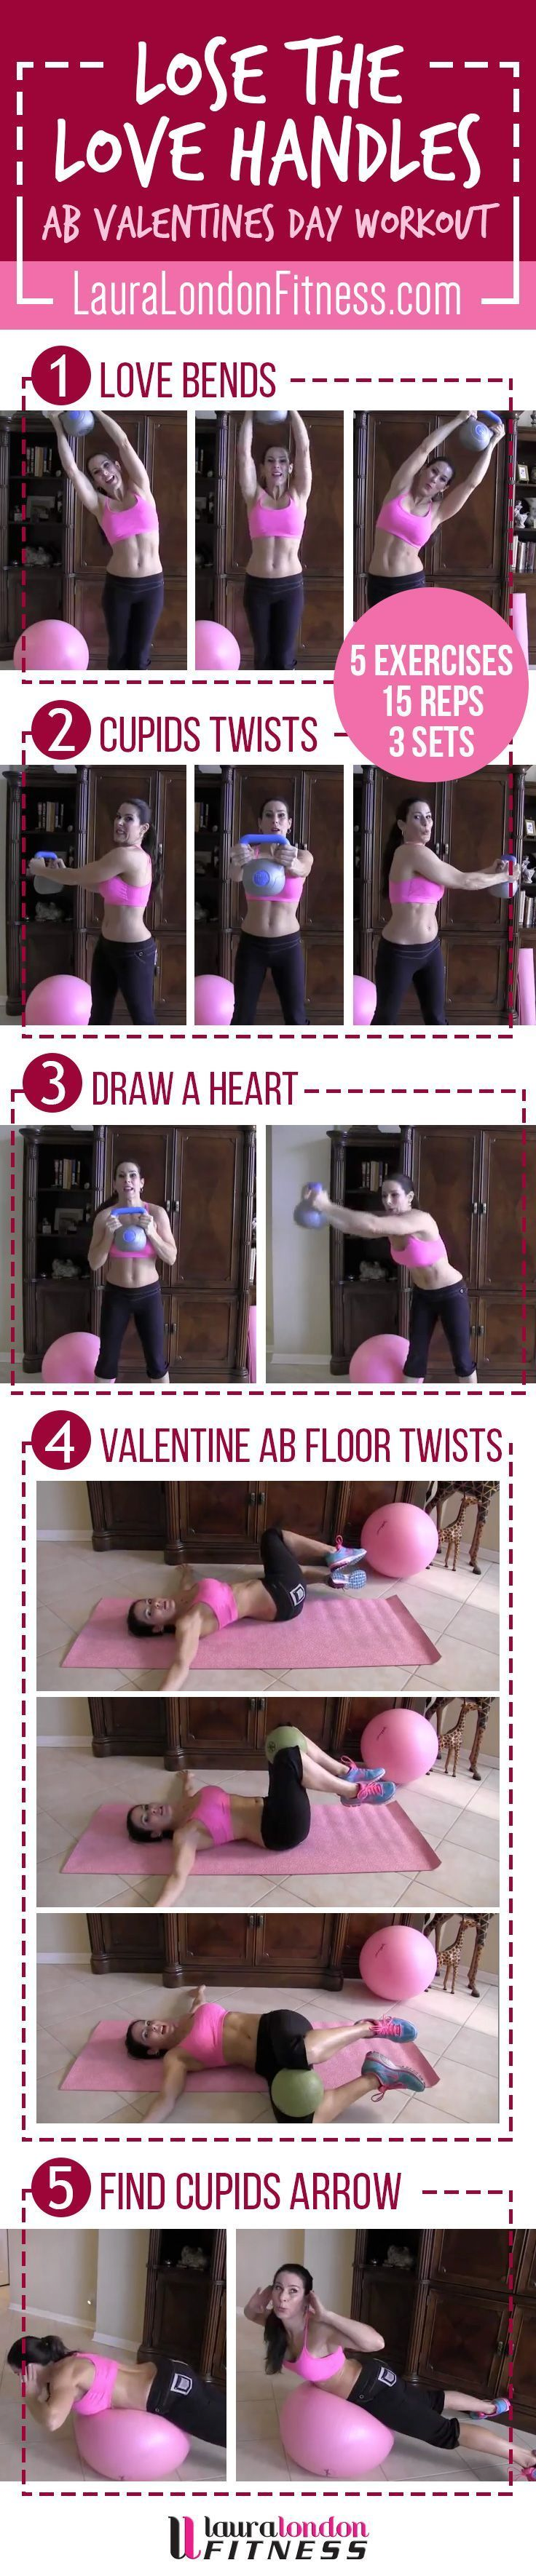 Lose the Love Handles, muffin top what ever you call that extra weight around your middle. Let's crush it with this workout. Share and Re-PIn too. Full video here: https://www.youtube.com/watch?v=RktmOzcYJwE #fitness #homeworkouts #lauralondonfitness